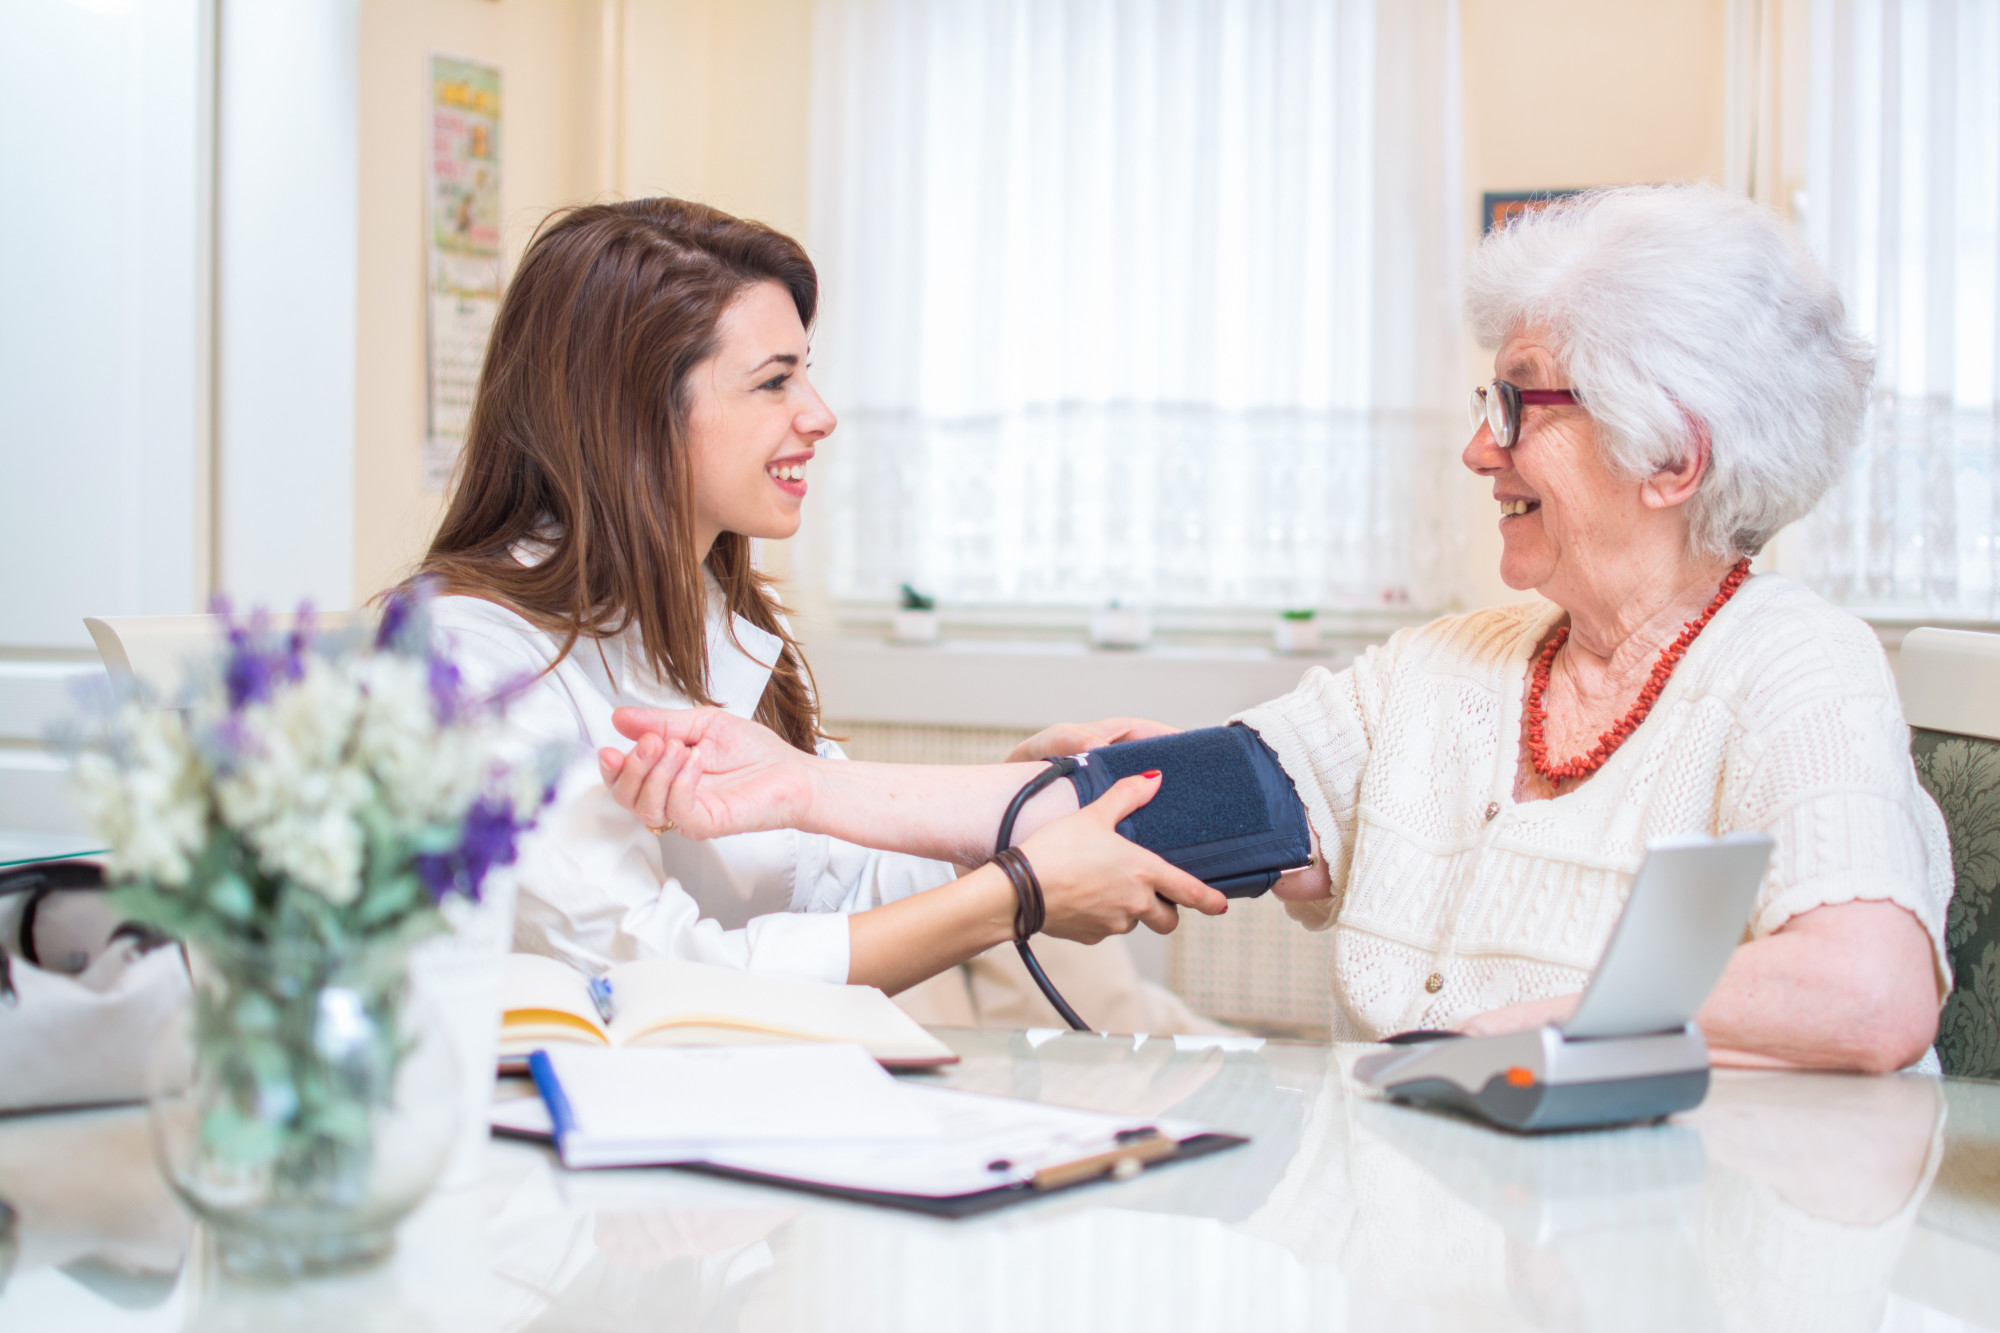 5 Signs It's Time to Hire a Home Nurse for Your Loved One